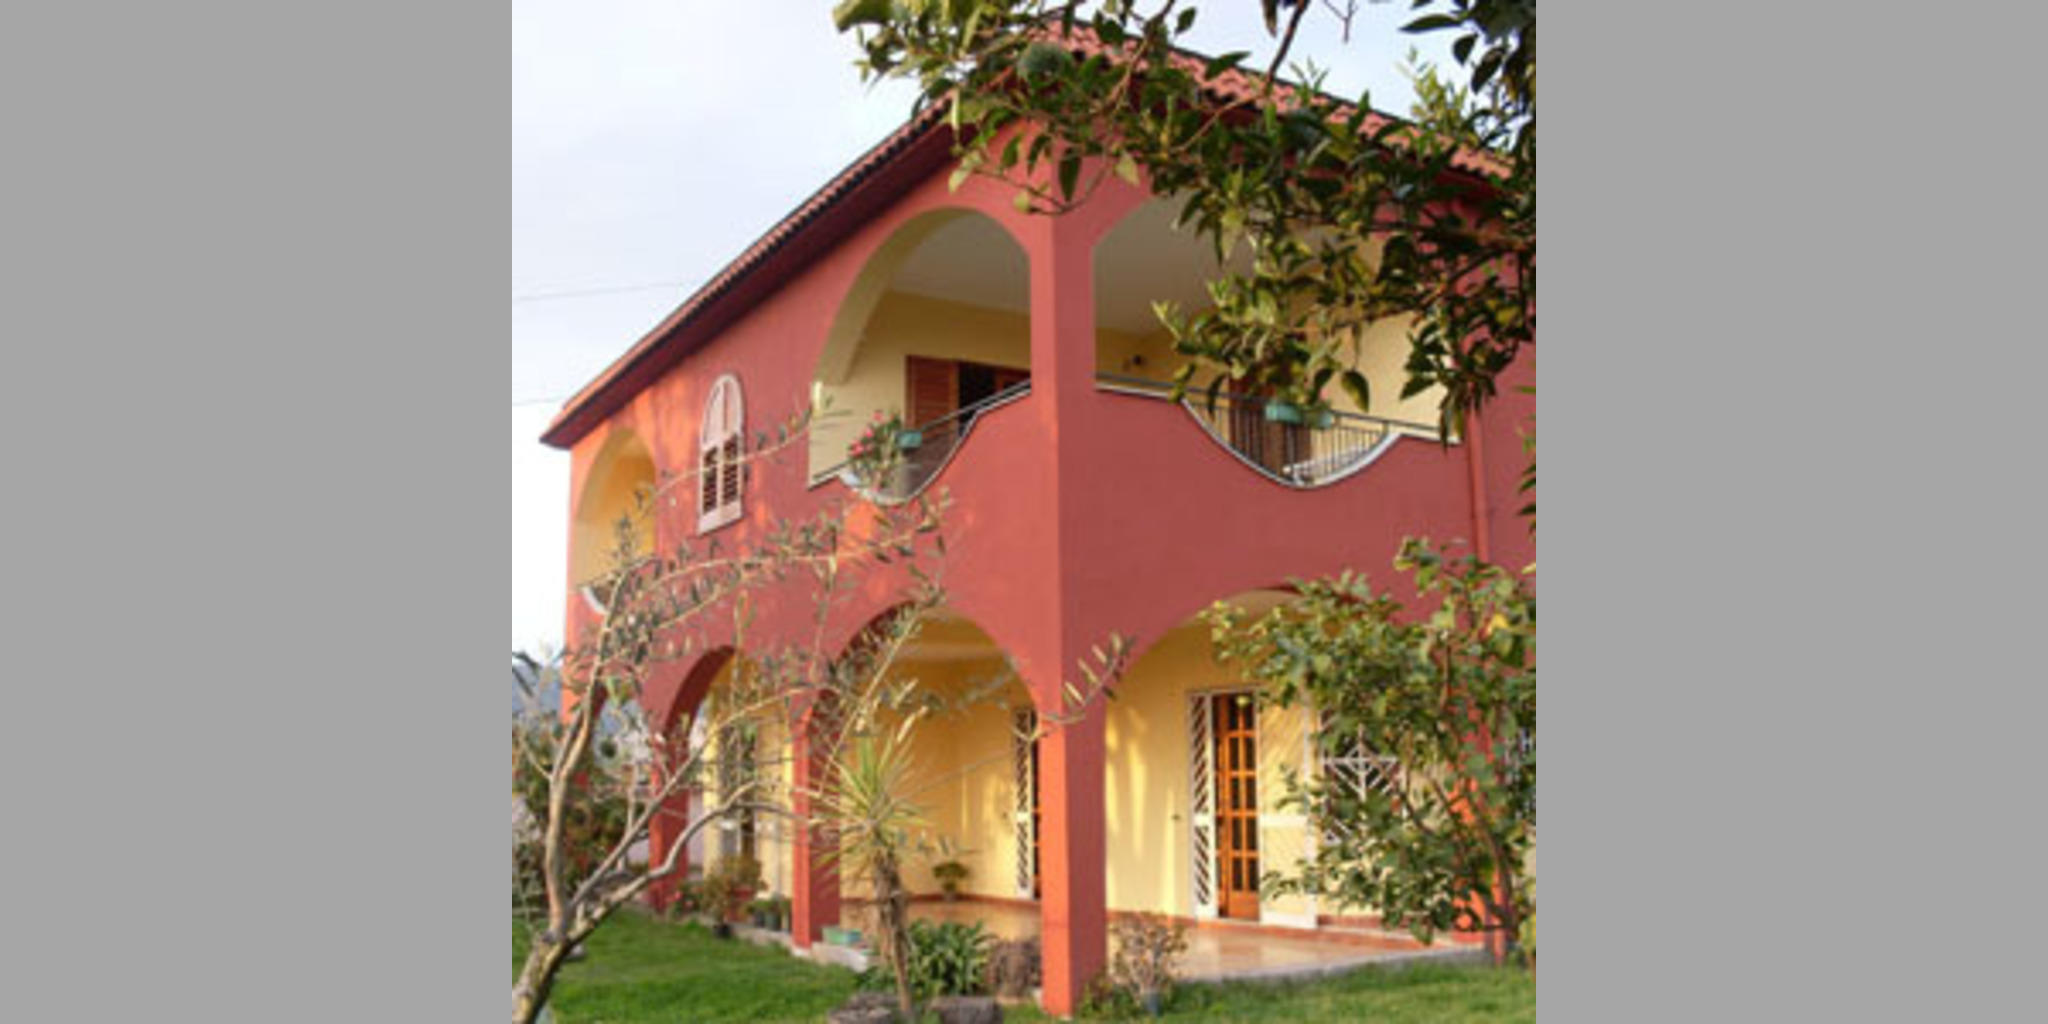 Bed & Breakfast Marigliano - Faibano_